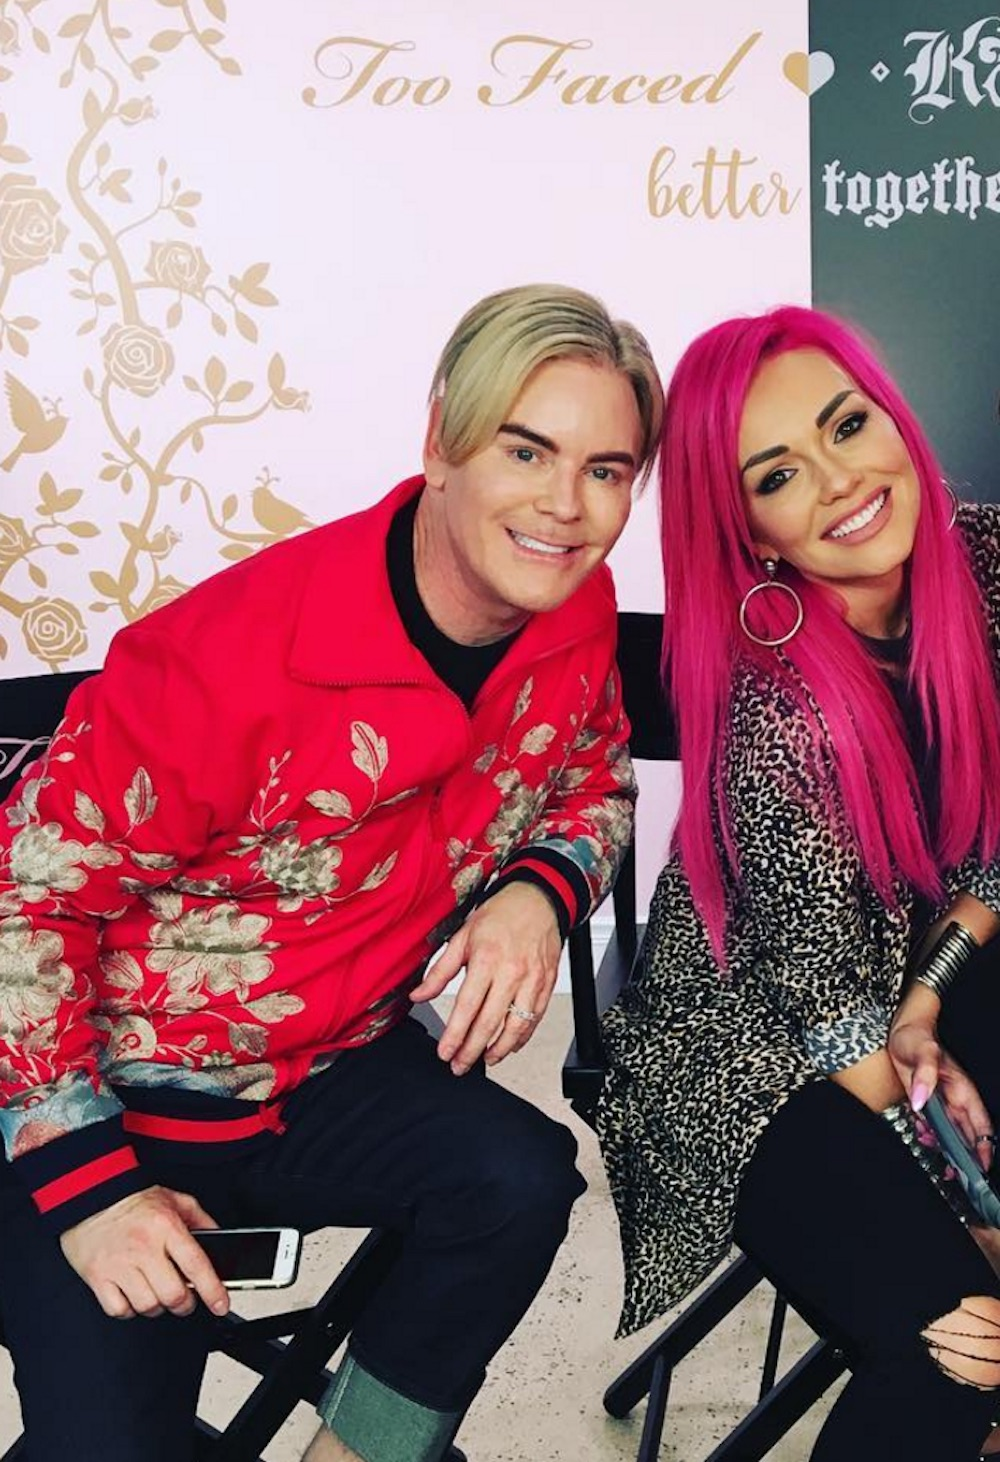 Jerrod Blandino shared a sneak peek with Kandee Johnson, and we are SO curious to know what they are up to